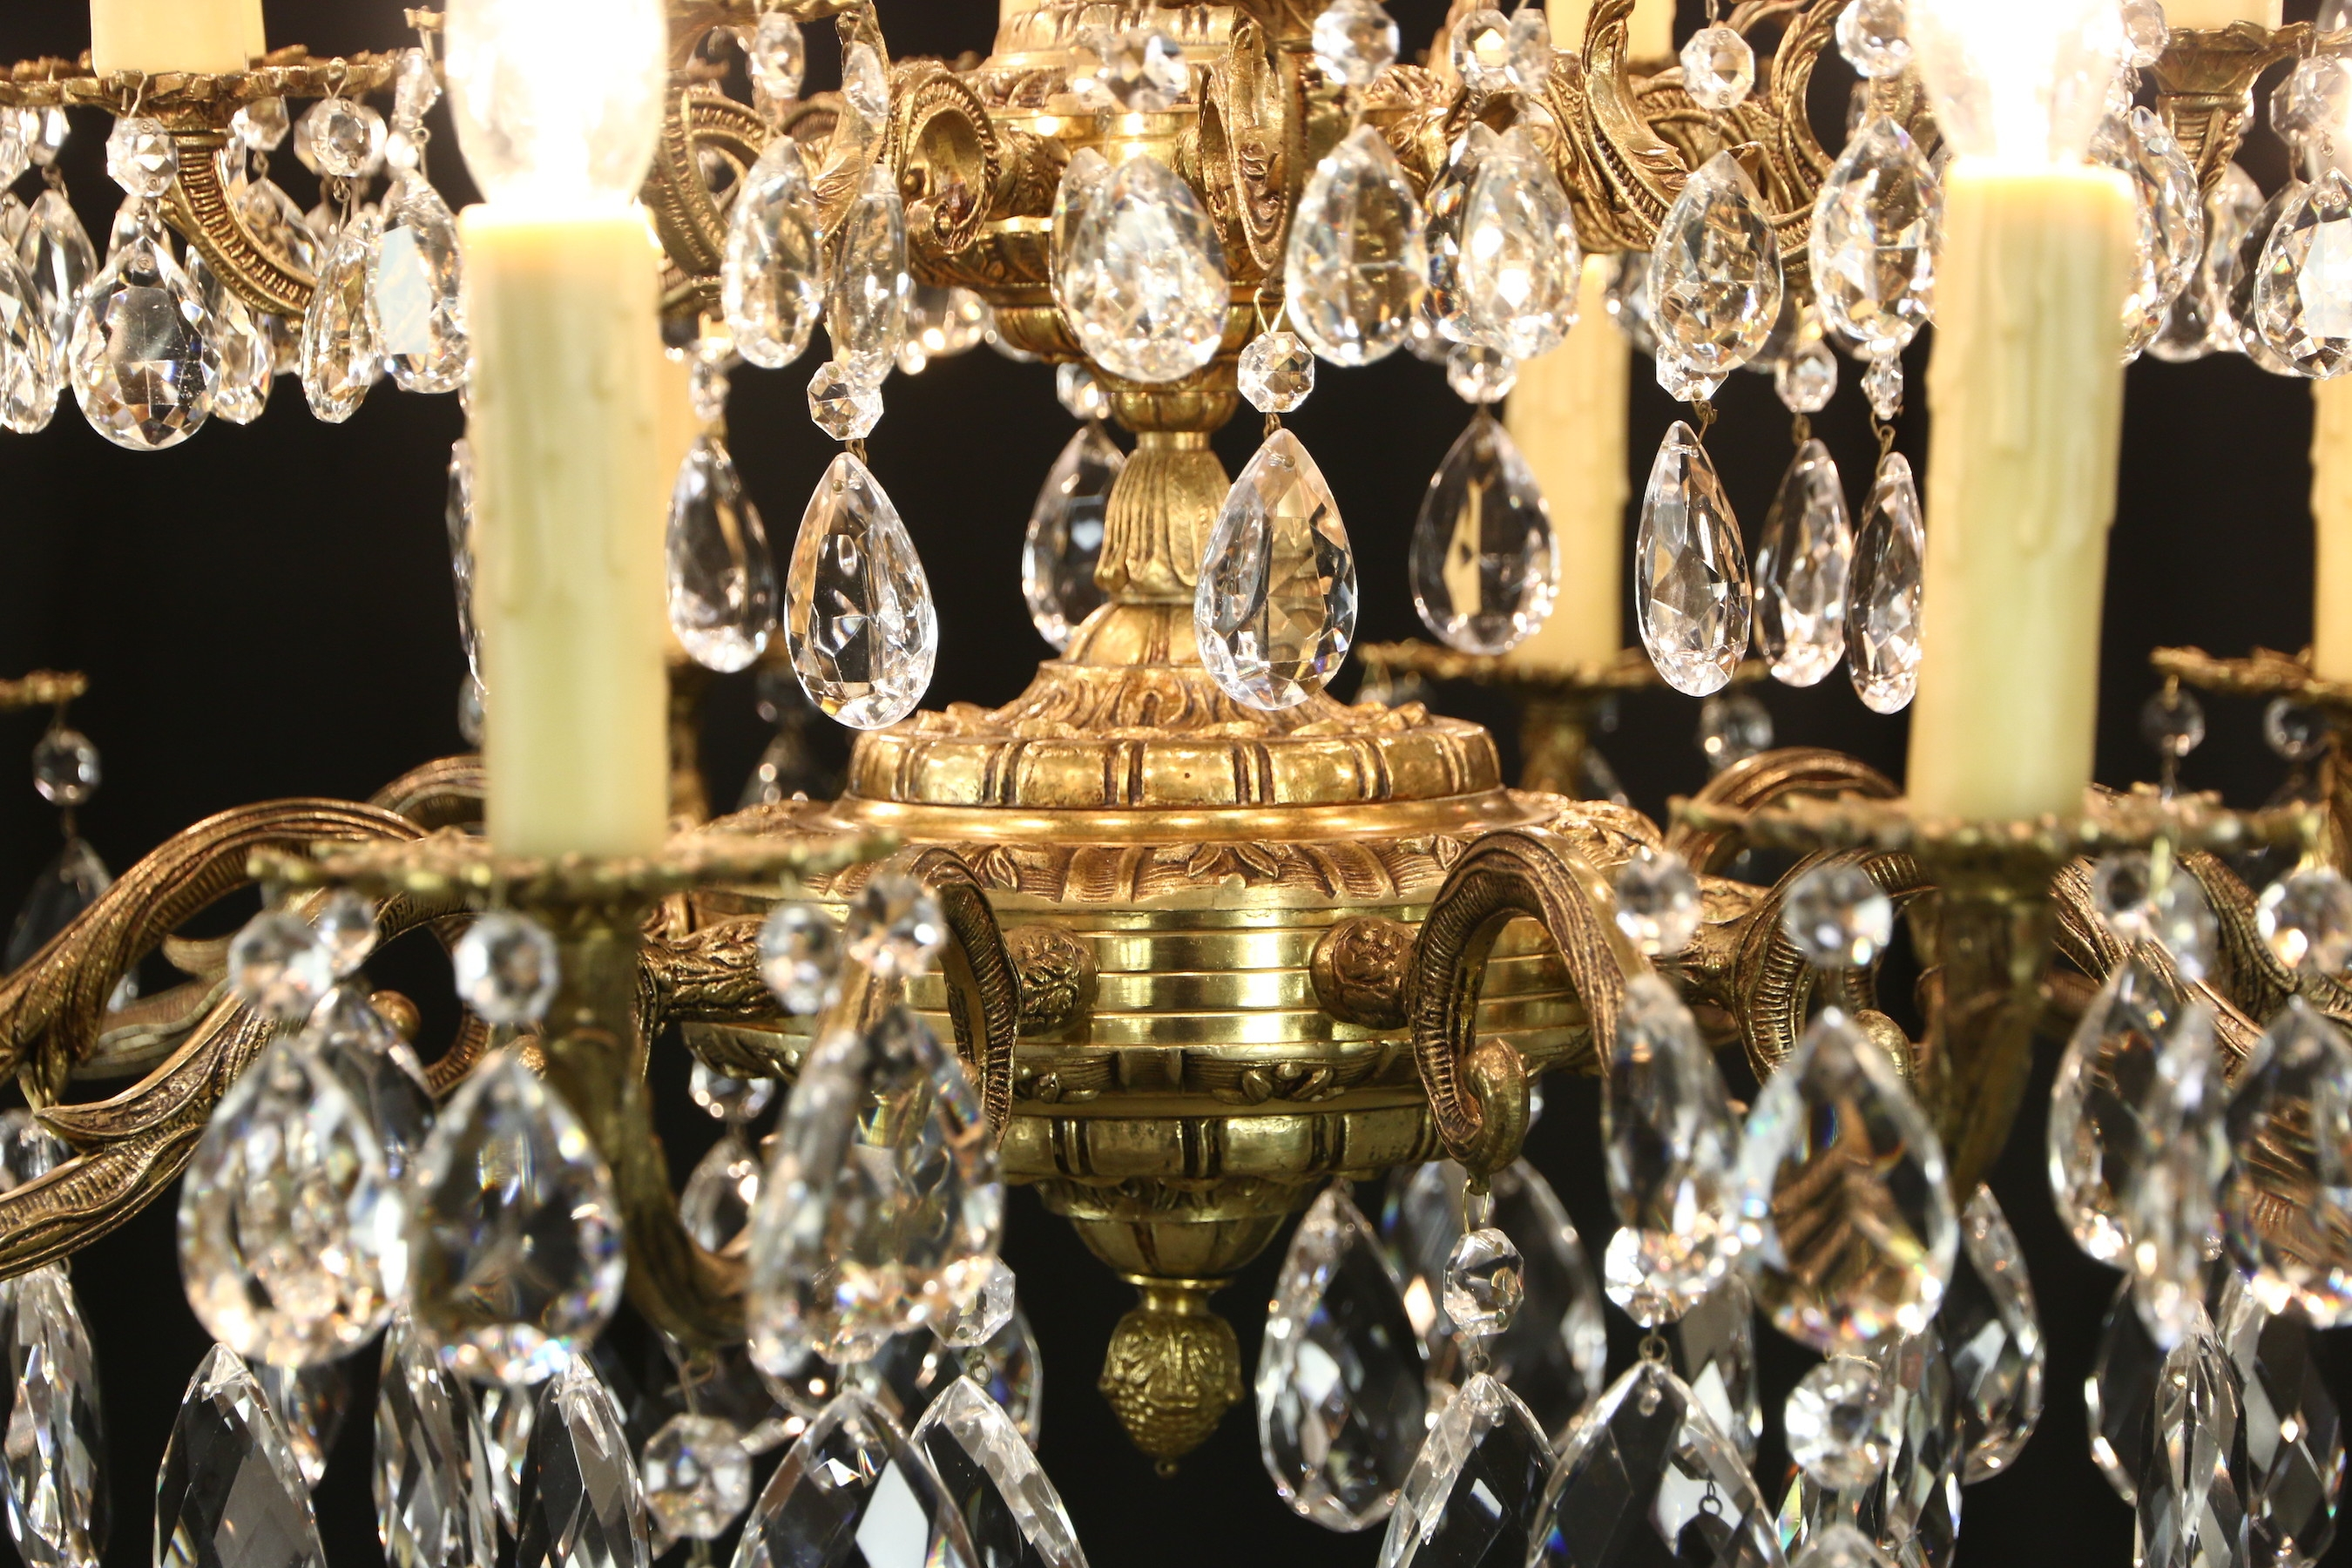 Sold Embossed Brass Cut Crystal 20 Light Candle Vintage Throughout Vintage Brass Chandeliers (Image 9 of 15)